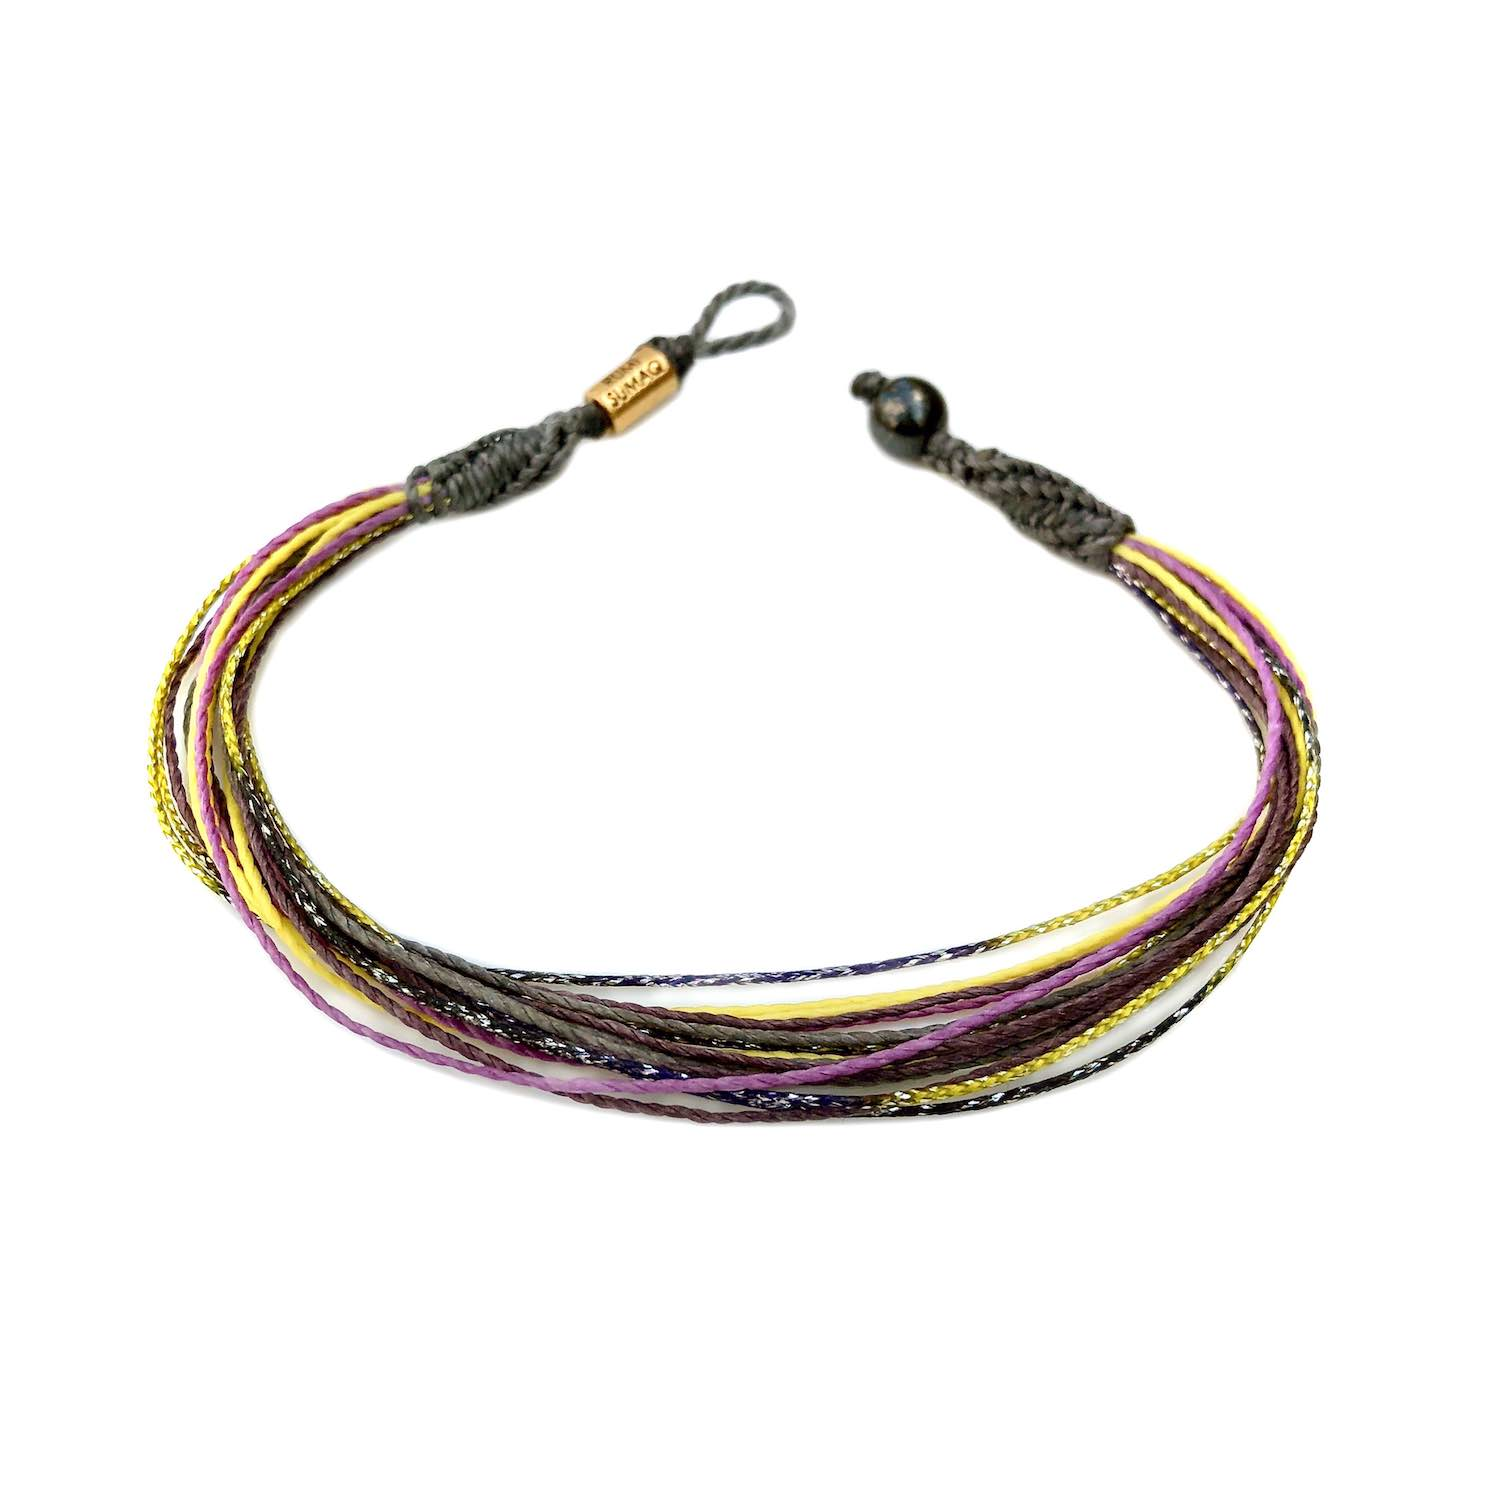 Waterproof anklet in gray, yellow, purple and metallic gold | Rumi Sumaq handmade ankle bracelets